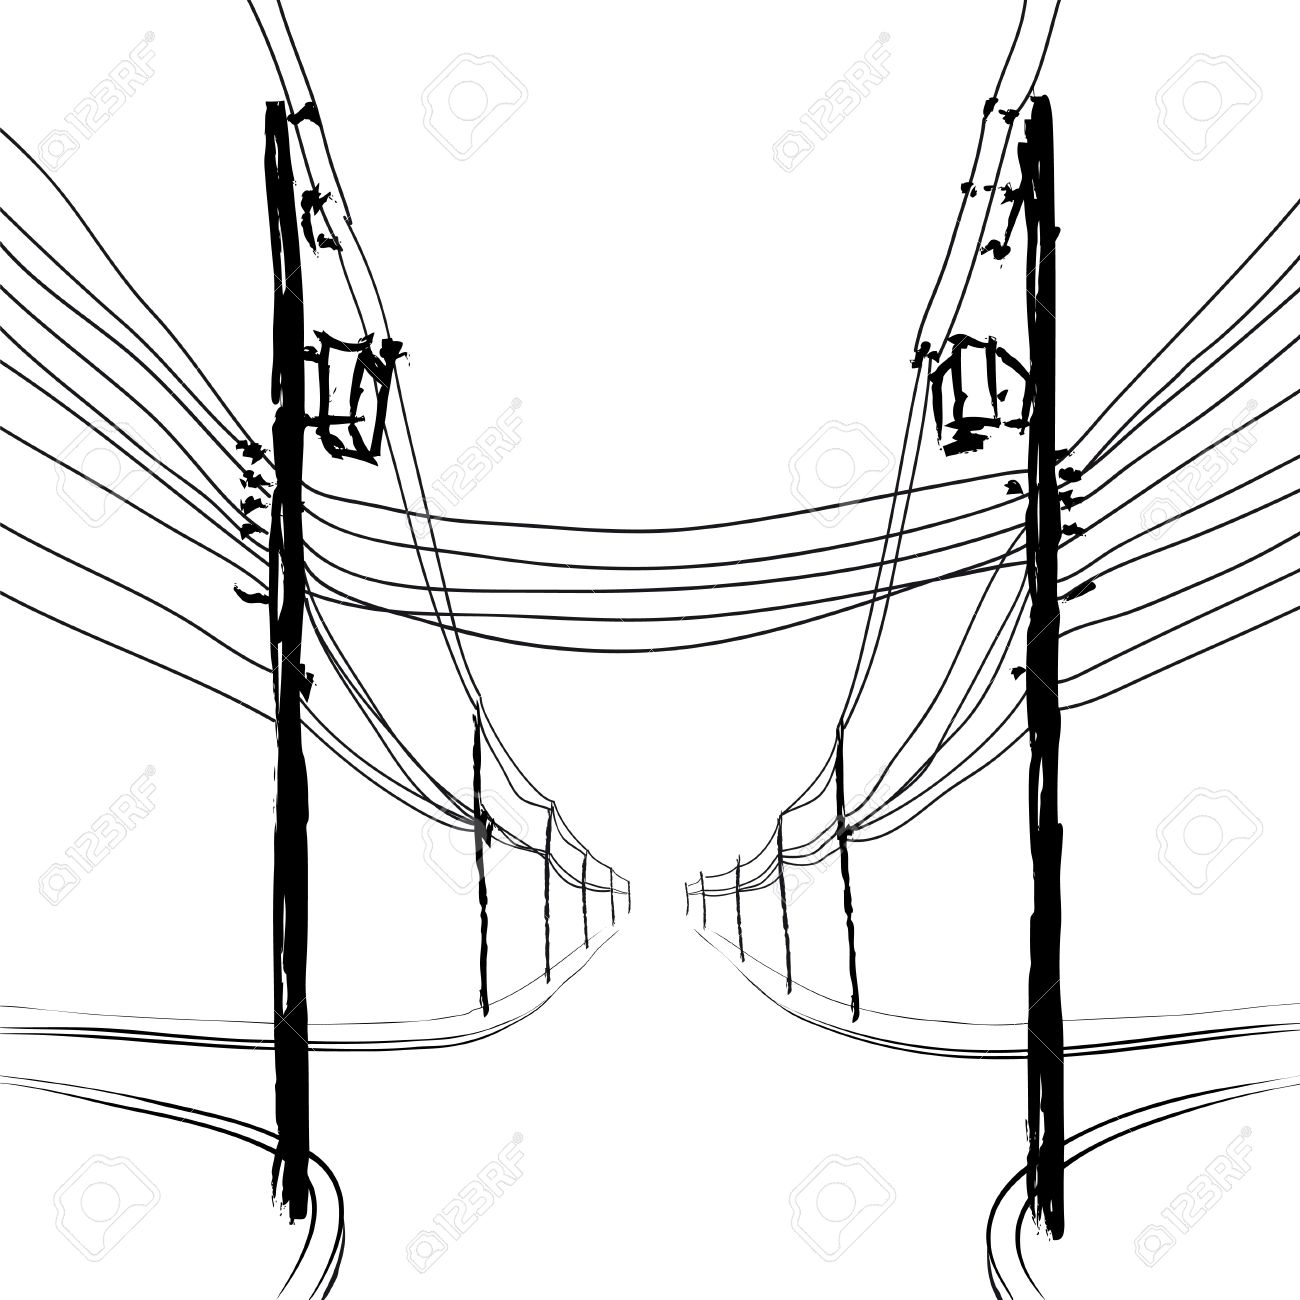 Telephone Pole Drawing At Getdrawings